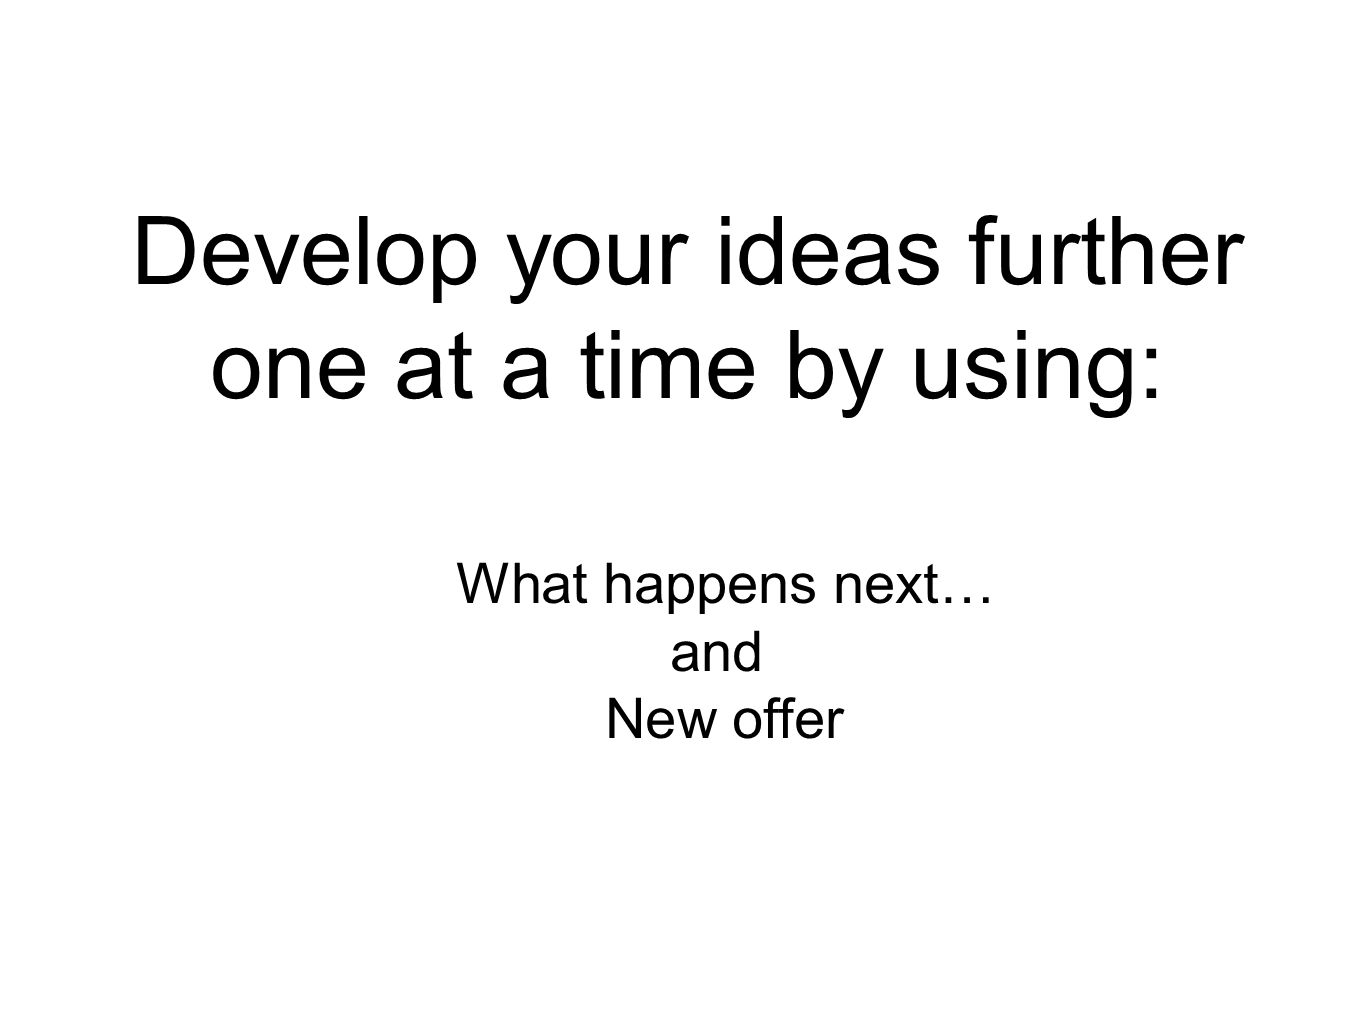 Develop your ideas further one at a time by using: What happens next… and New offer